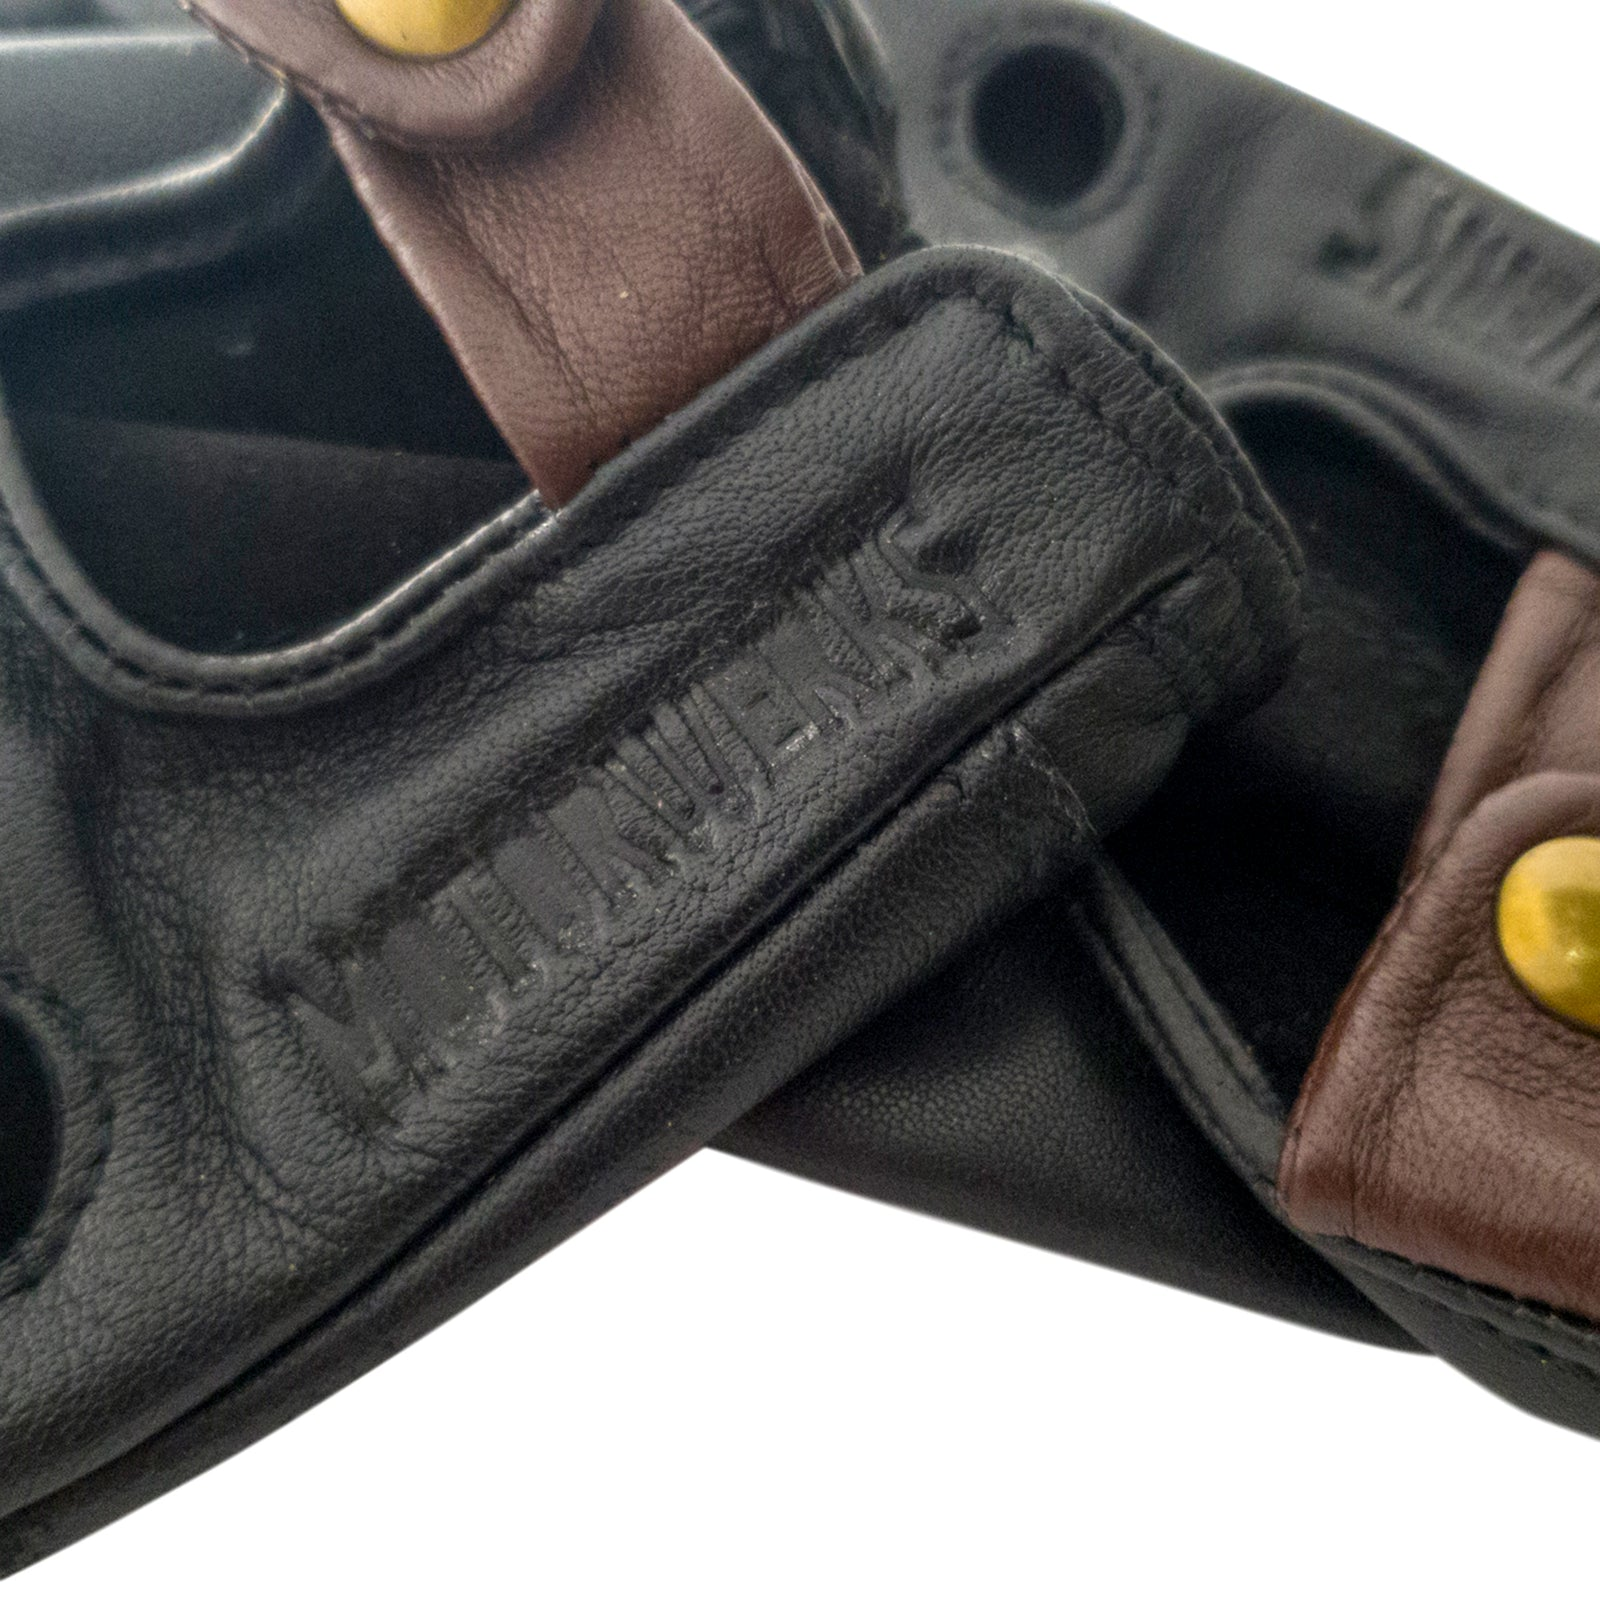 MW Monza Glove Black/Brown